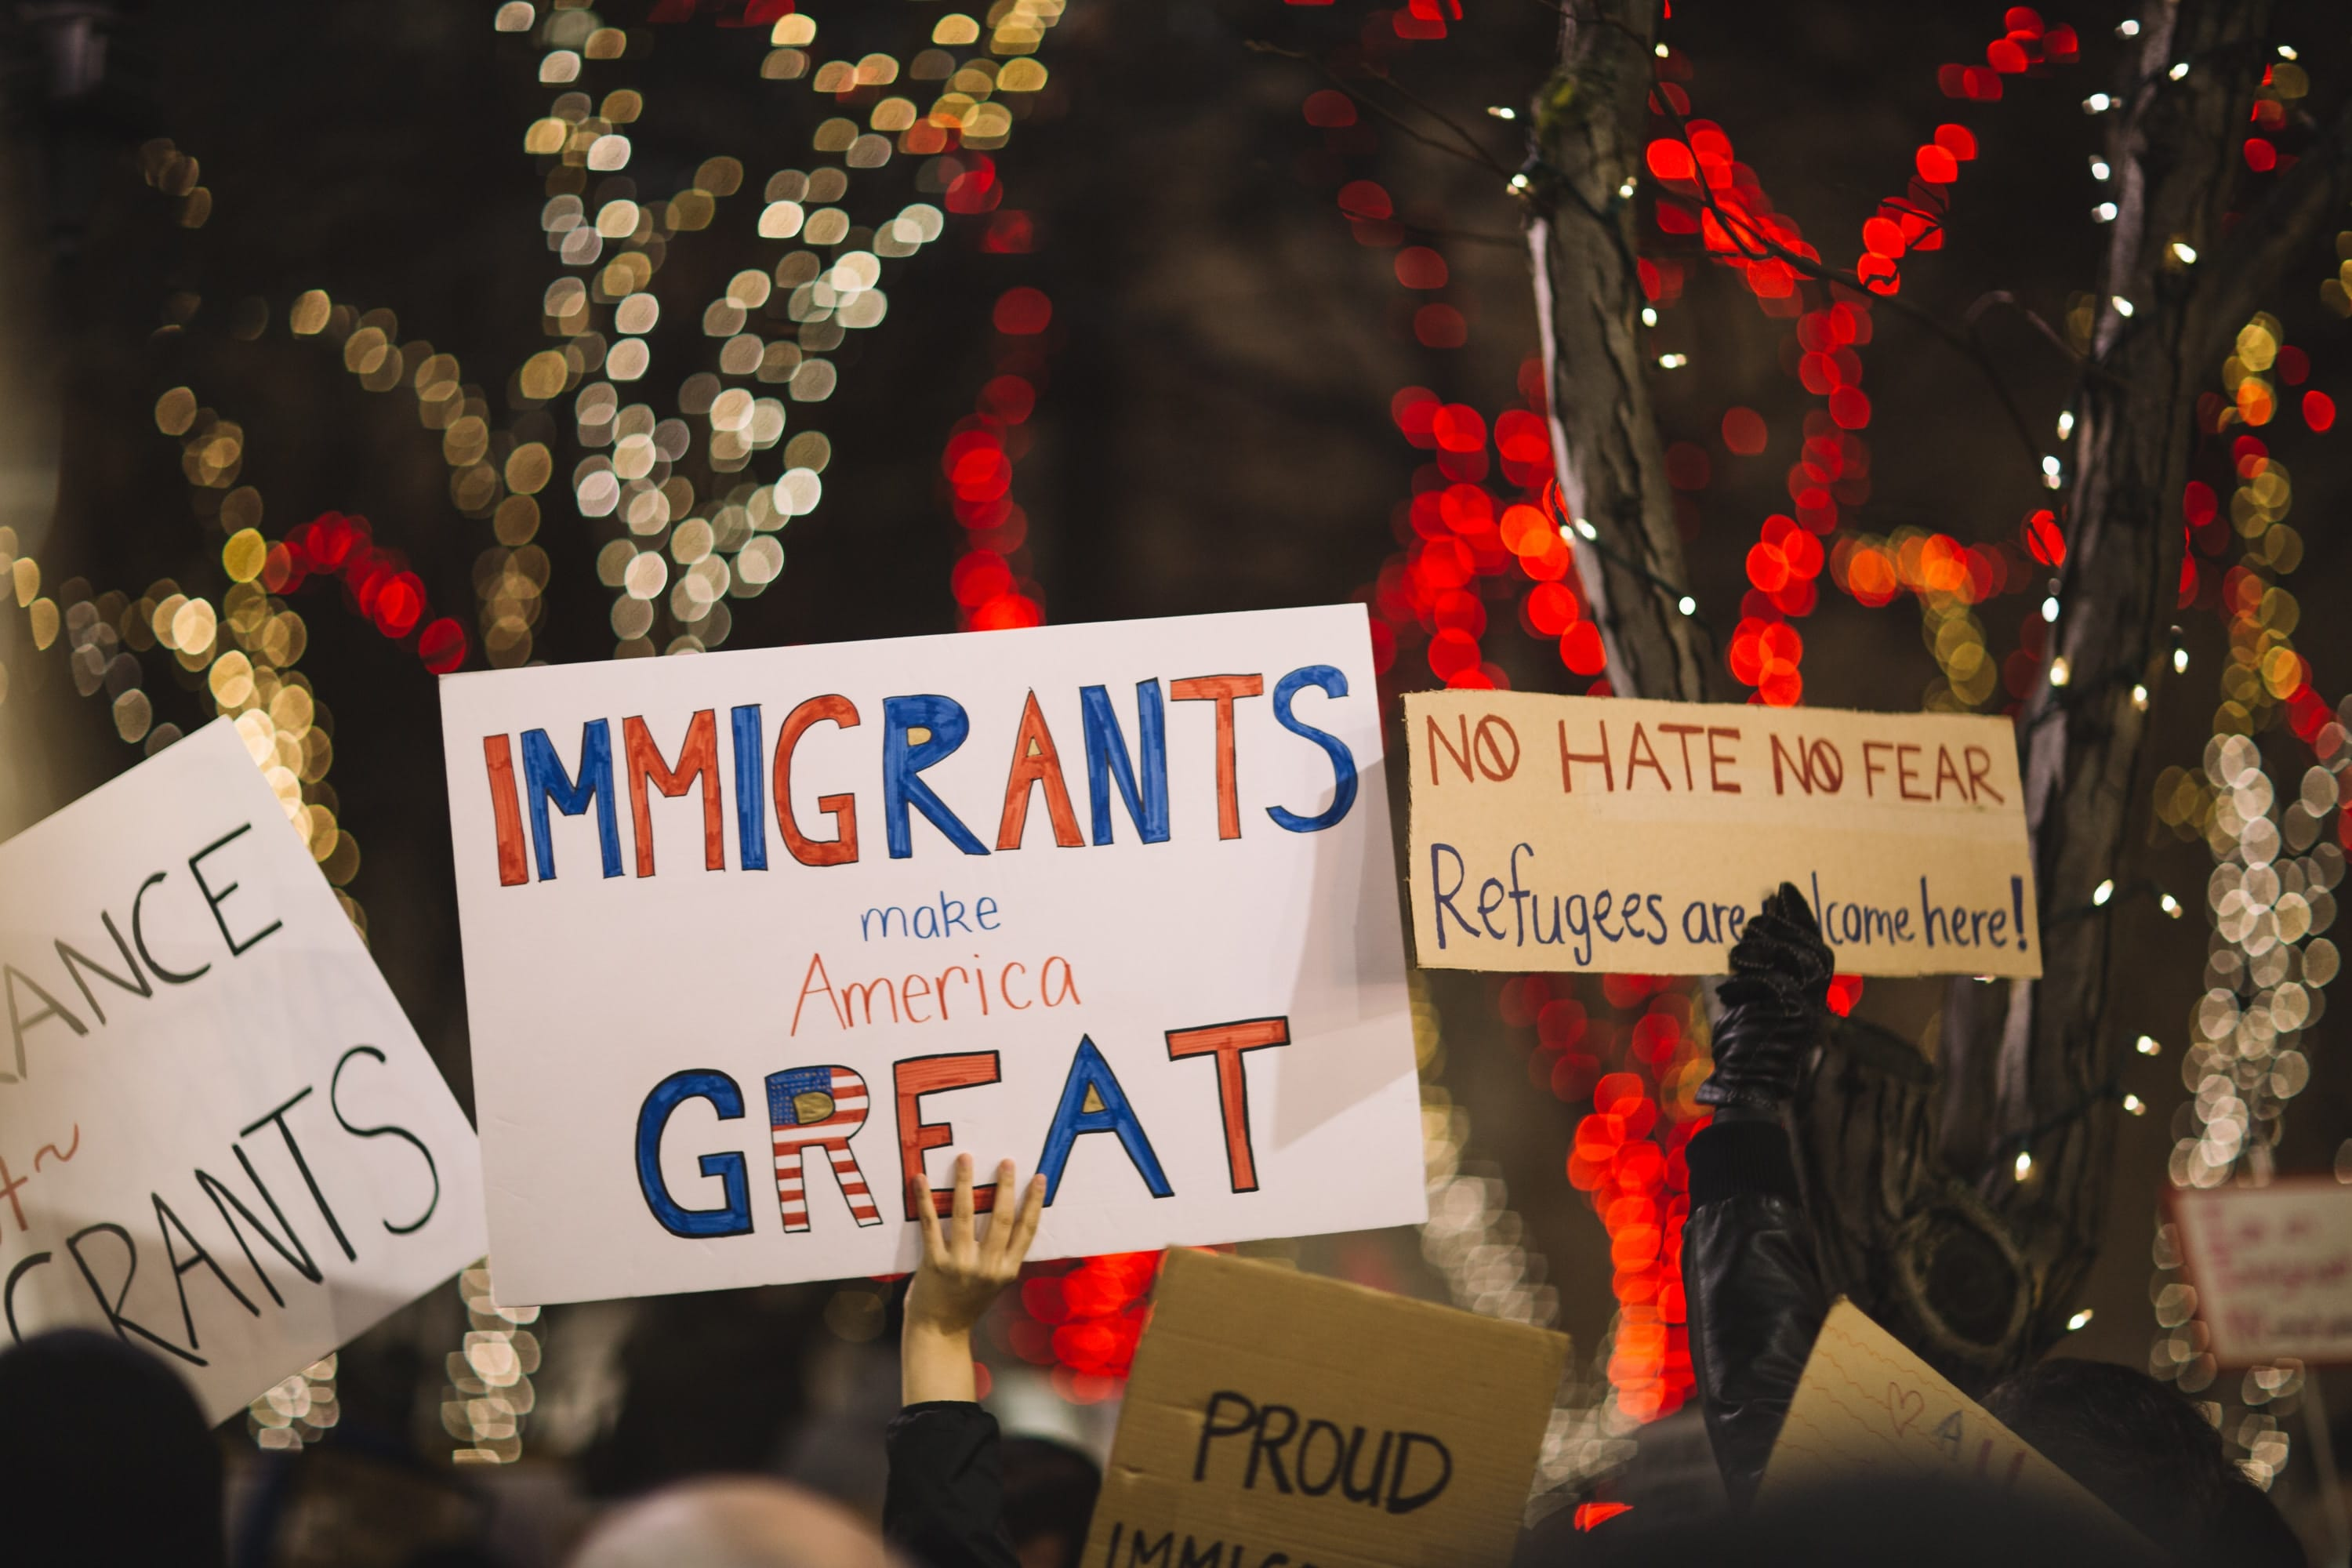 """Sign saying """"Immigrants make America Great"""" and one saying """"No Hate, No Fear, Refugees are Welcome here;"""" image by Nitish Meena, via Unsplash.com."""